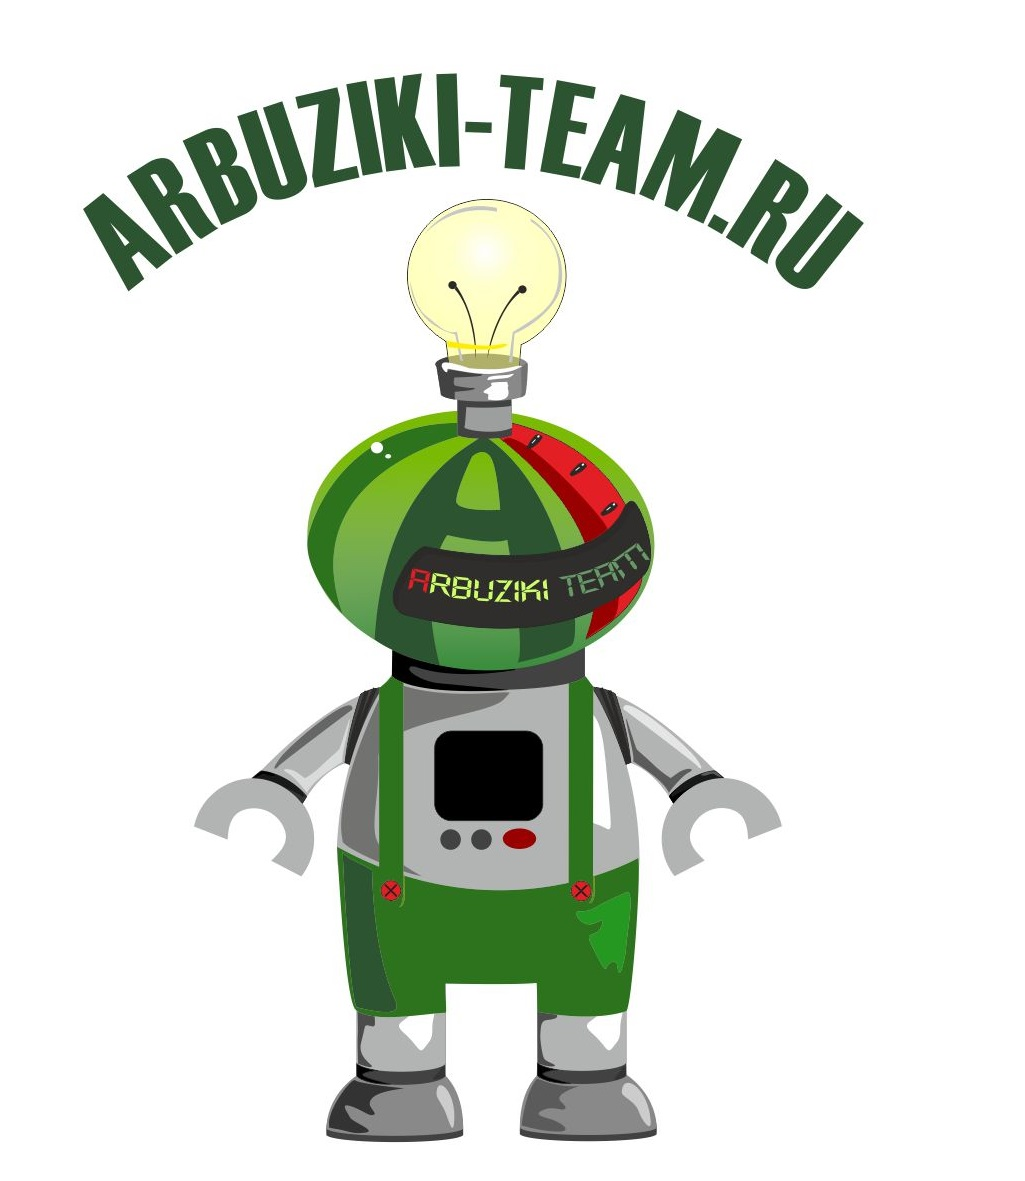 arbuziki-team